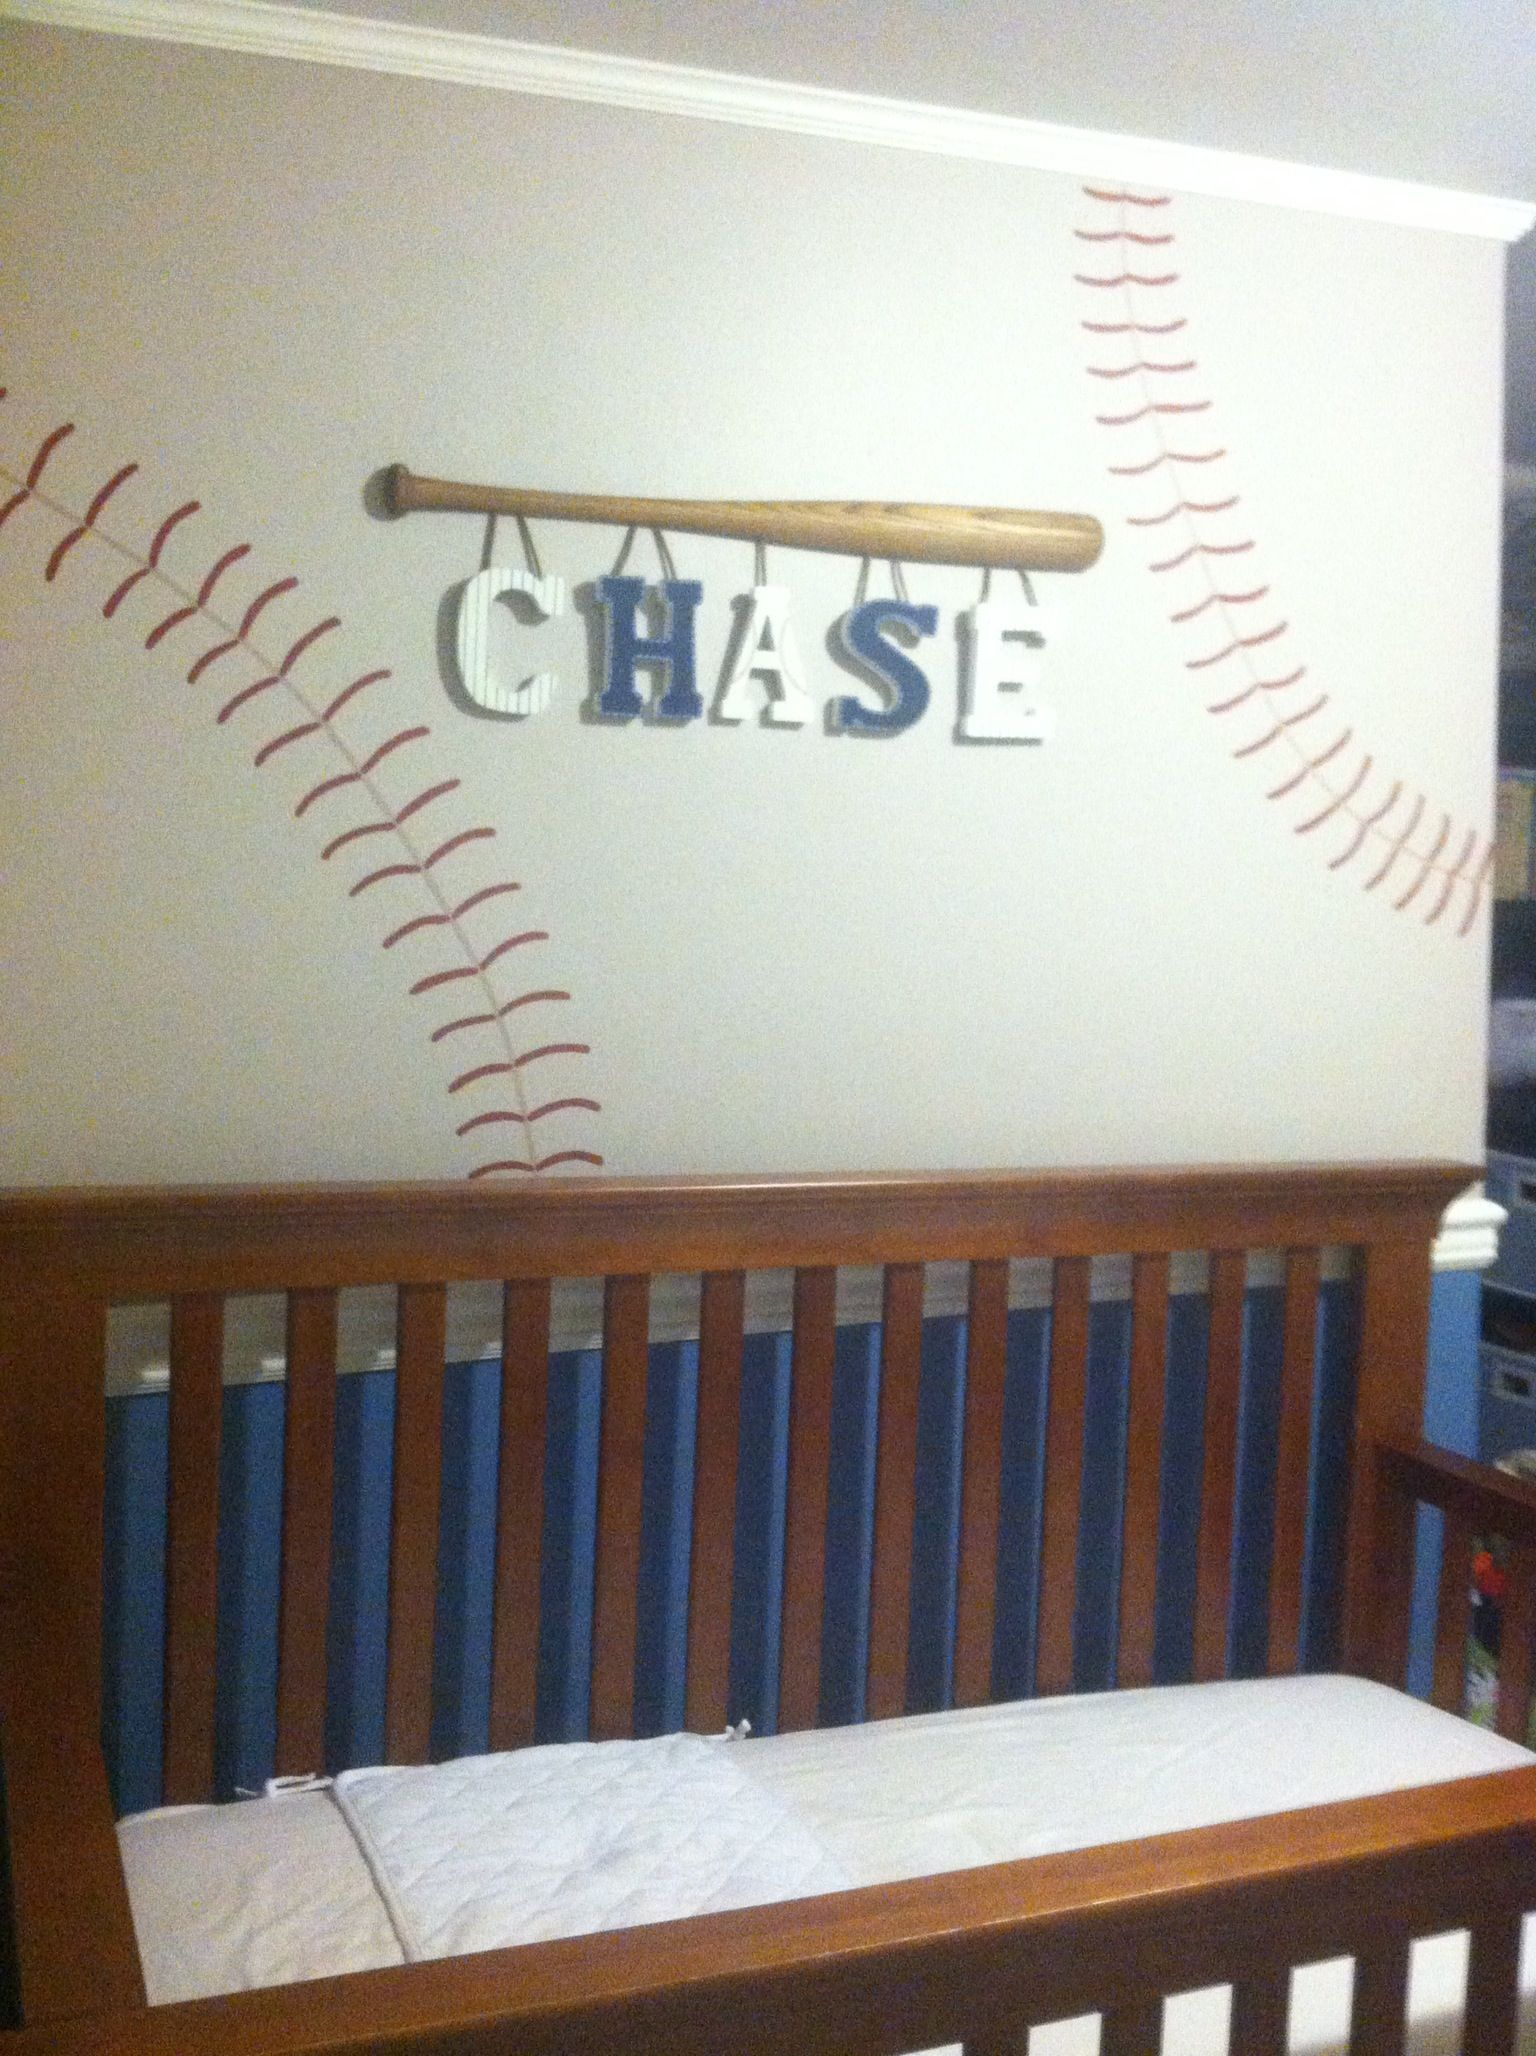 Boys Baseball Bedroom Ideas baseball lettersperfect for a little boy! | babe's room